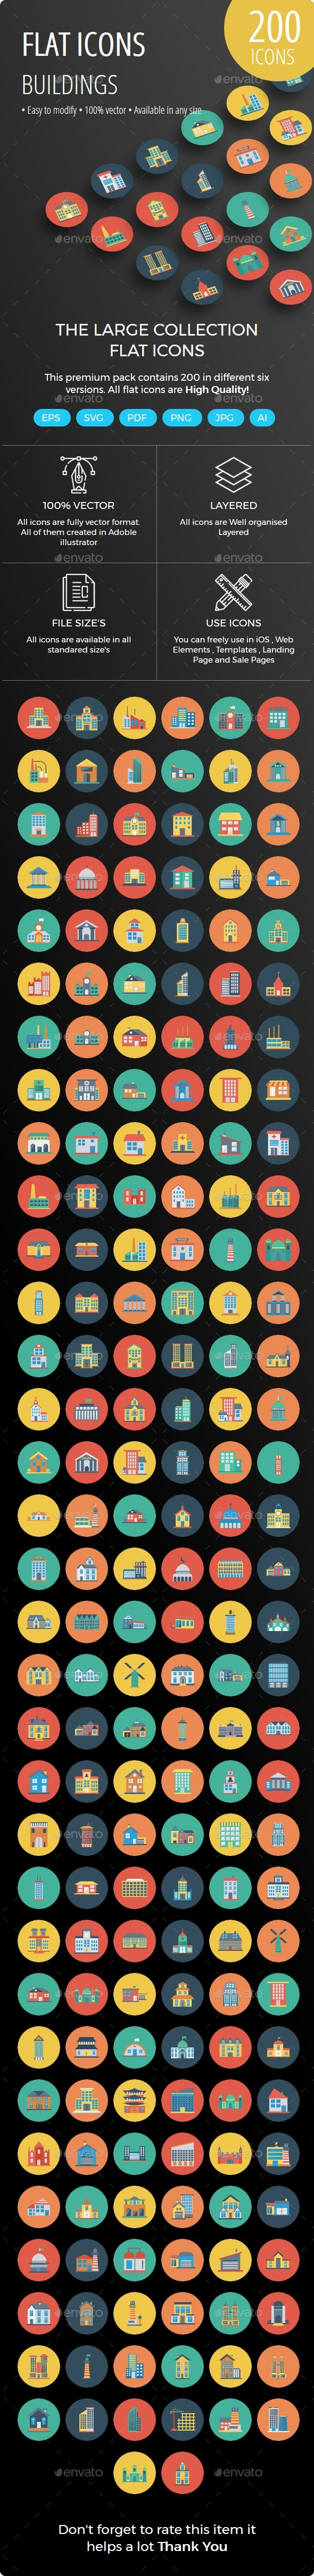 200 Building Flat Circle Icons - Icons